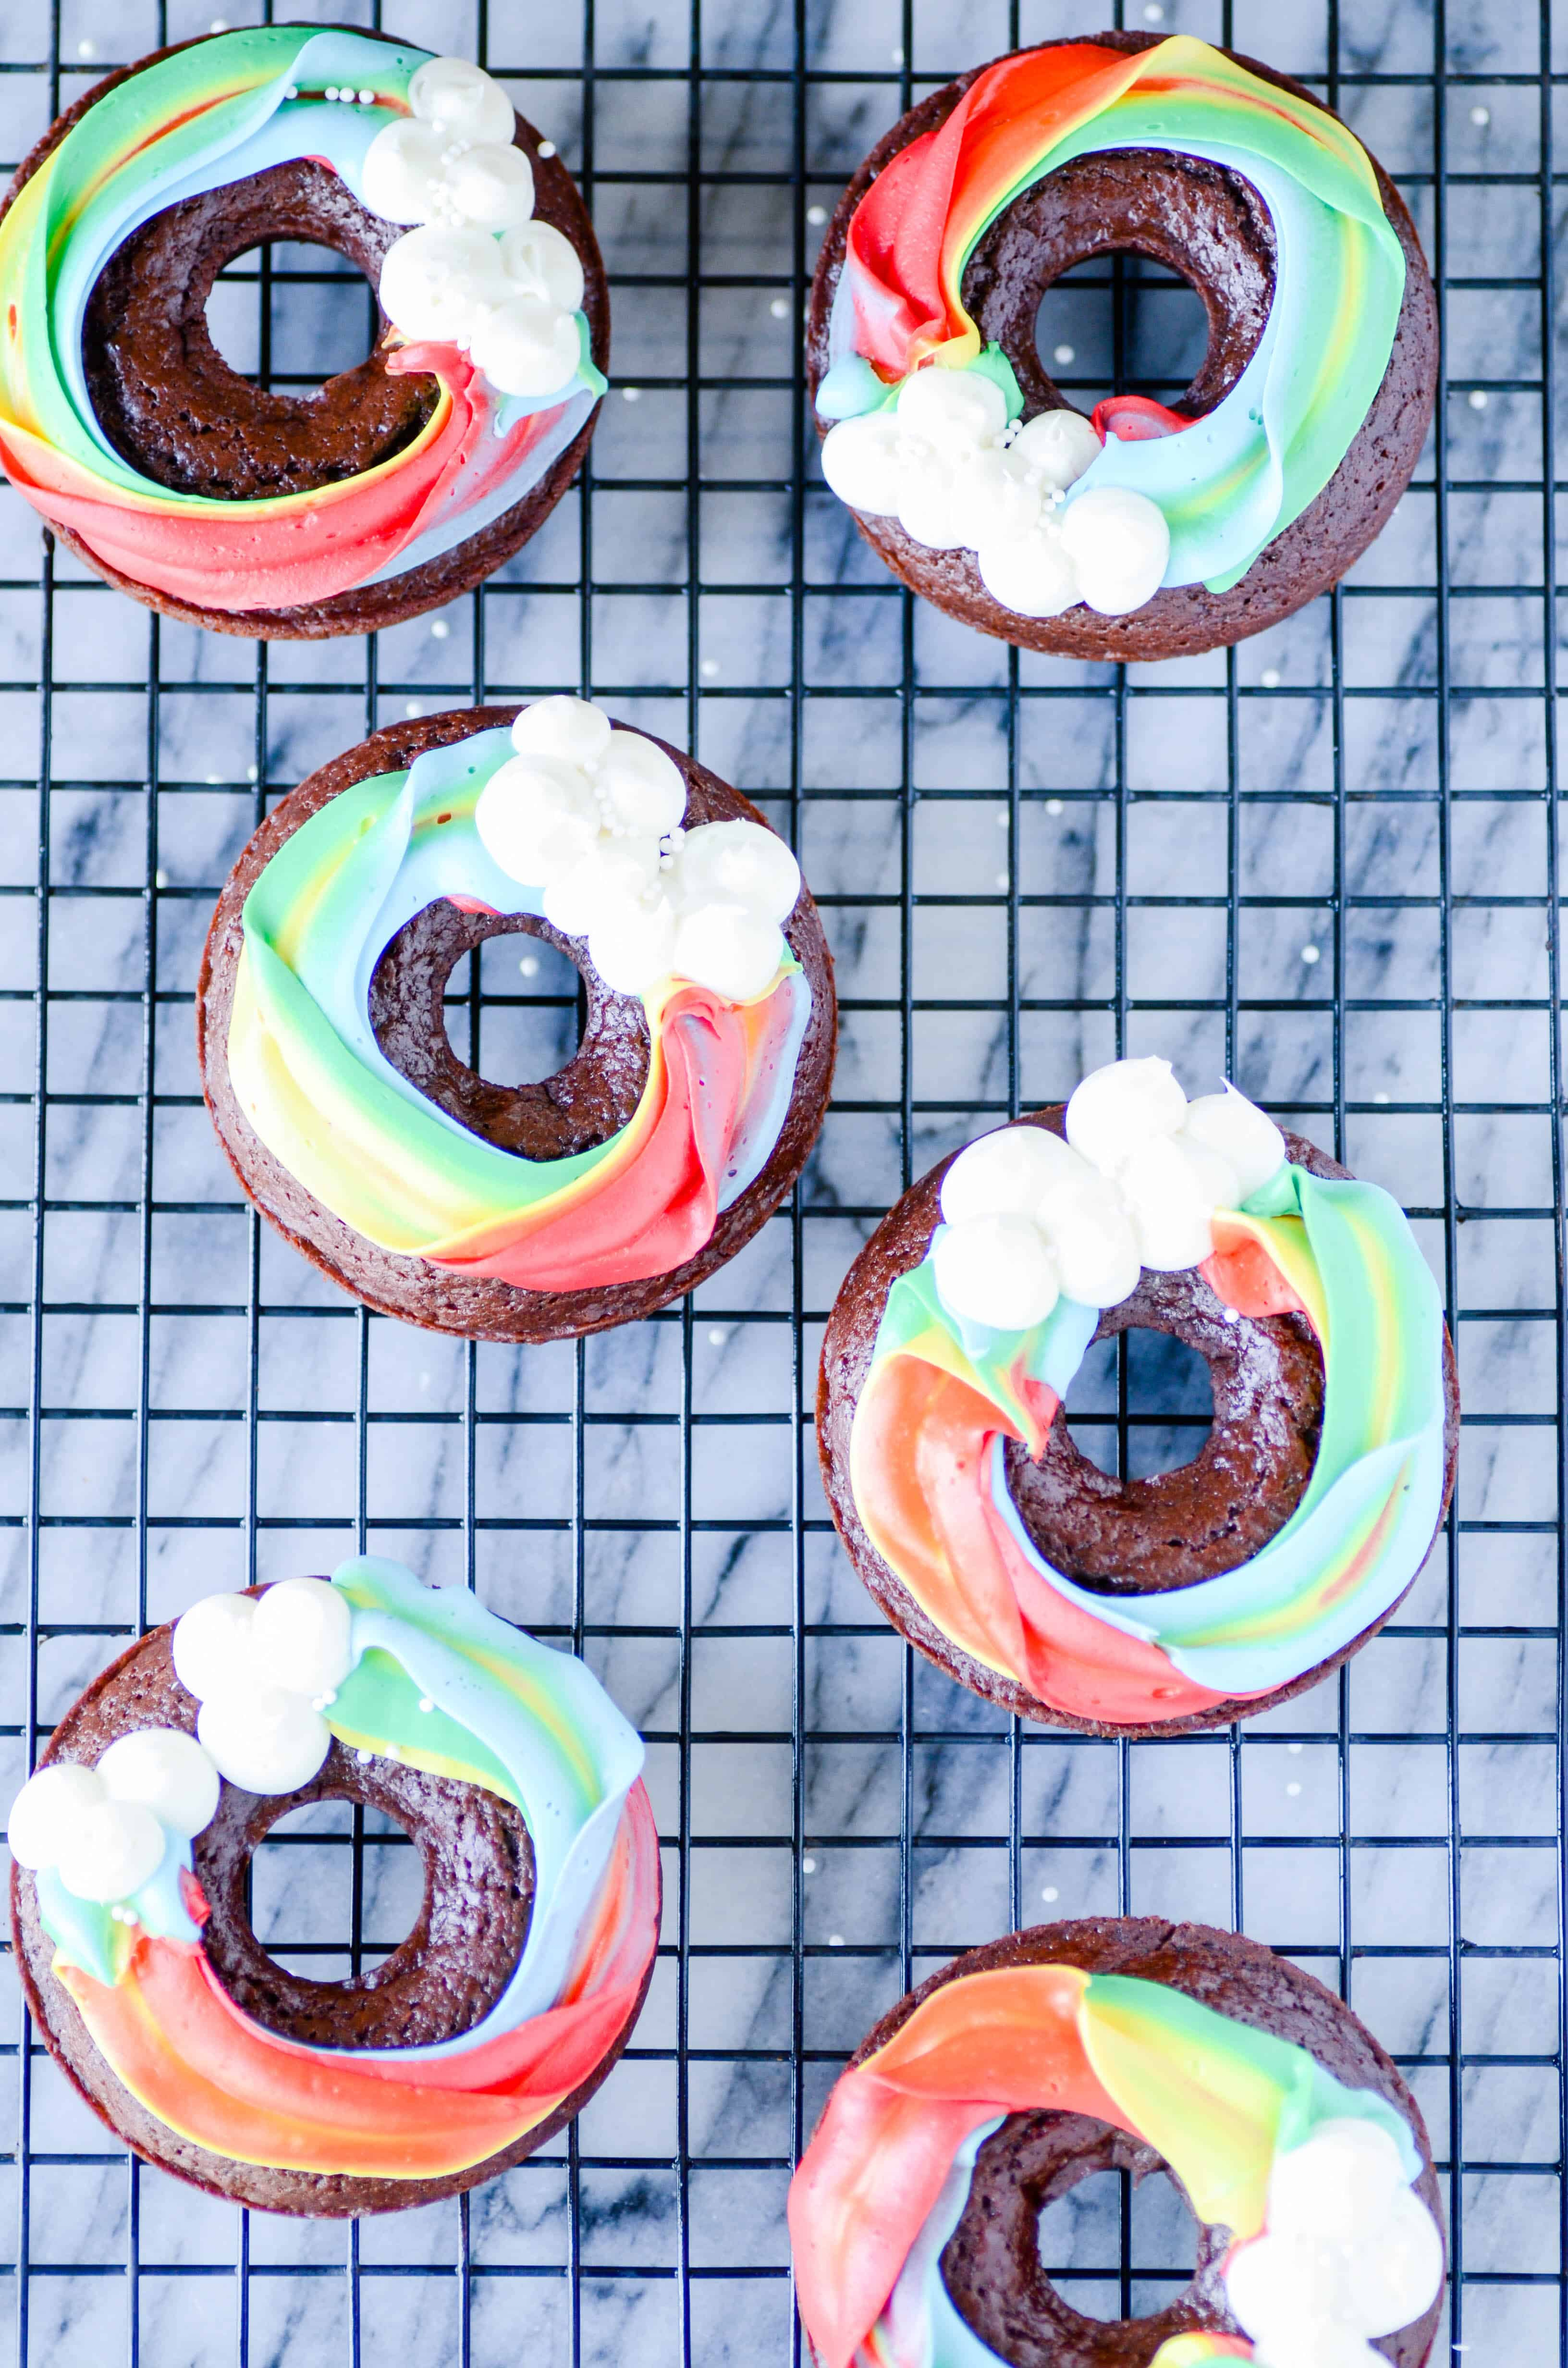 My favorite baked chocolate donut with a frosting rainbow on top.